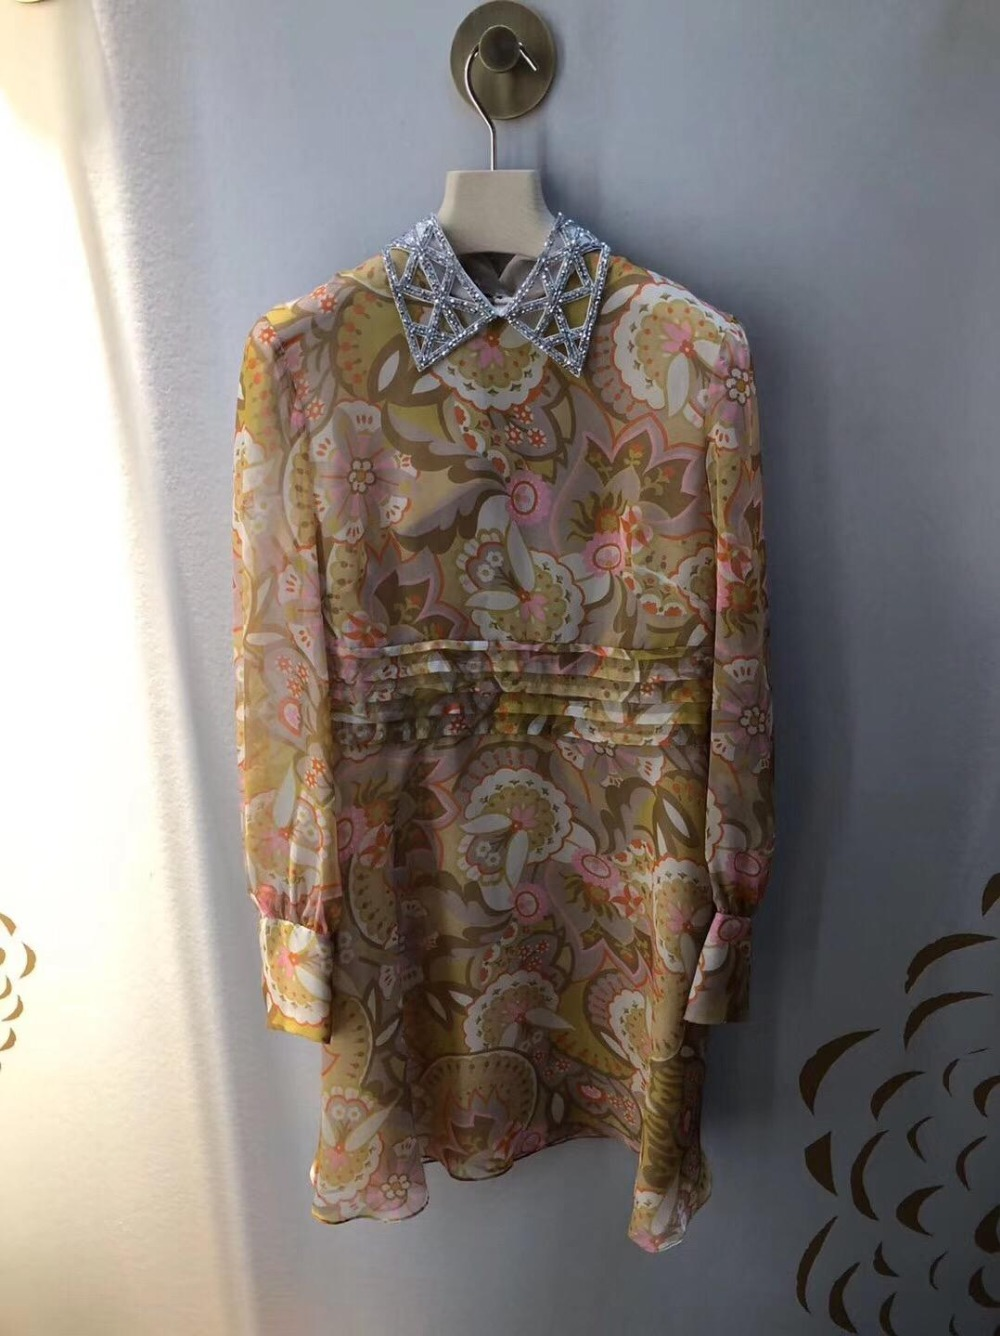 2019 new ladies fashion long sleeved V neck cotton dress 0415